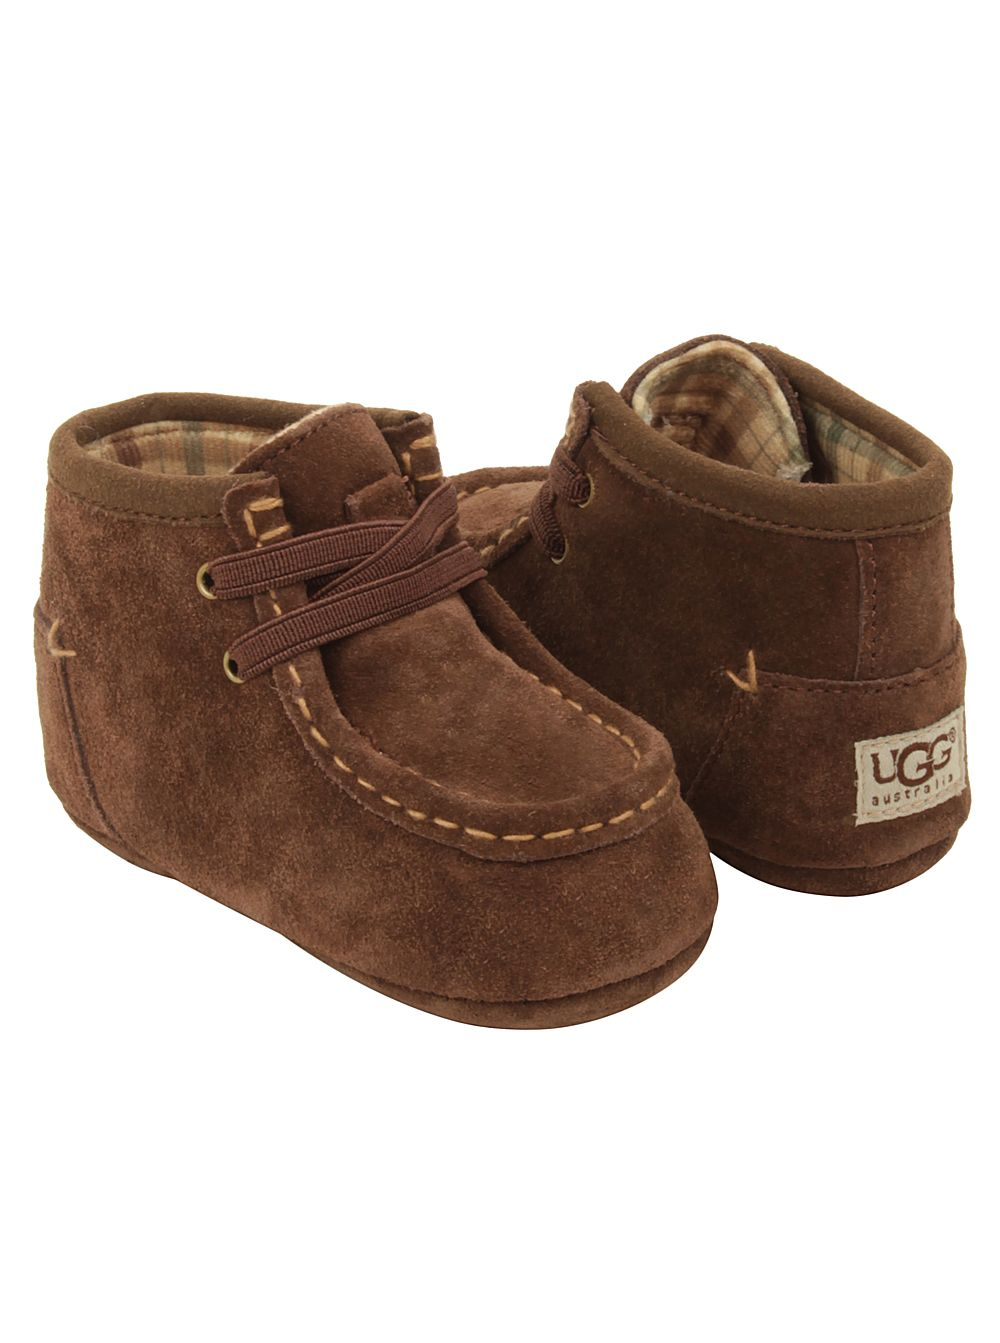 9257377d8f9 boots$39 on | Baby boy shoes | Baby boots, Baby boy fashion, Uggs